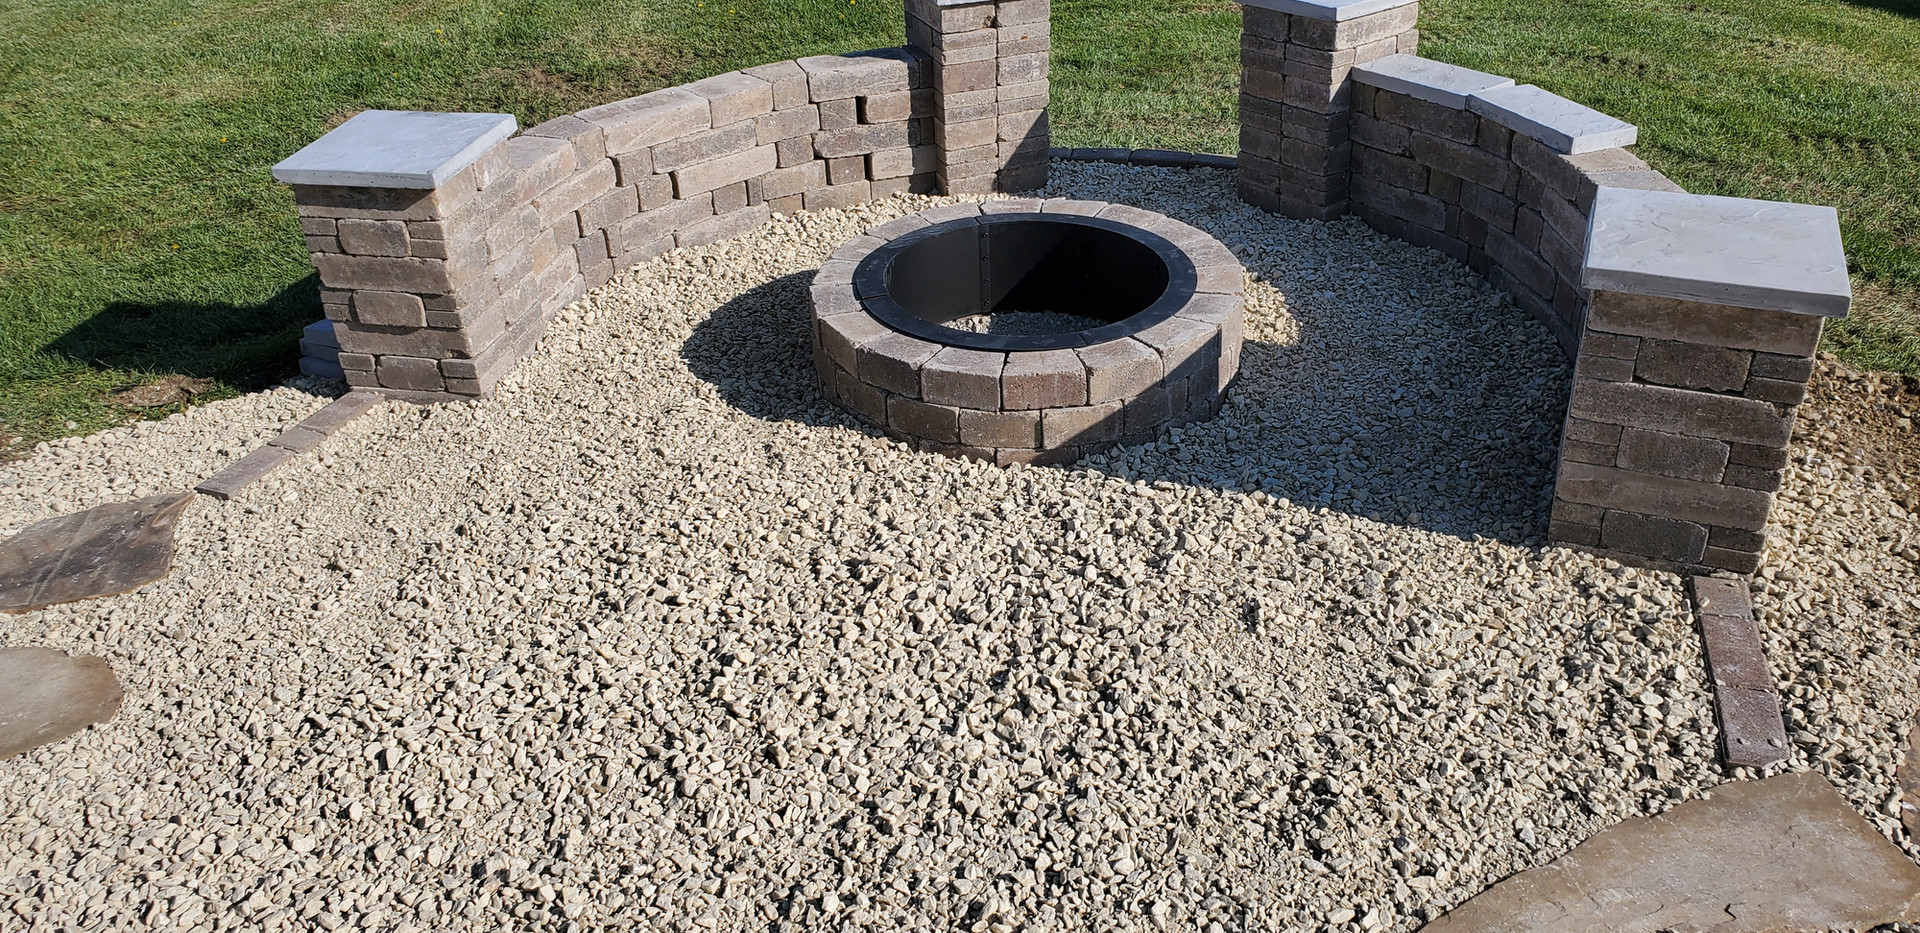 Seat wall and Firepit.jpg